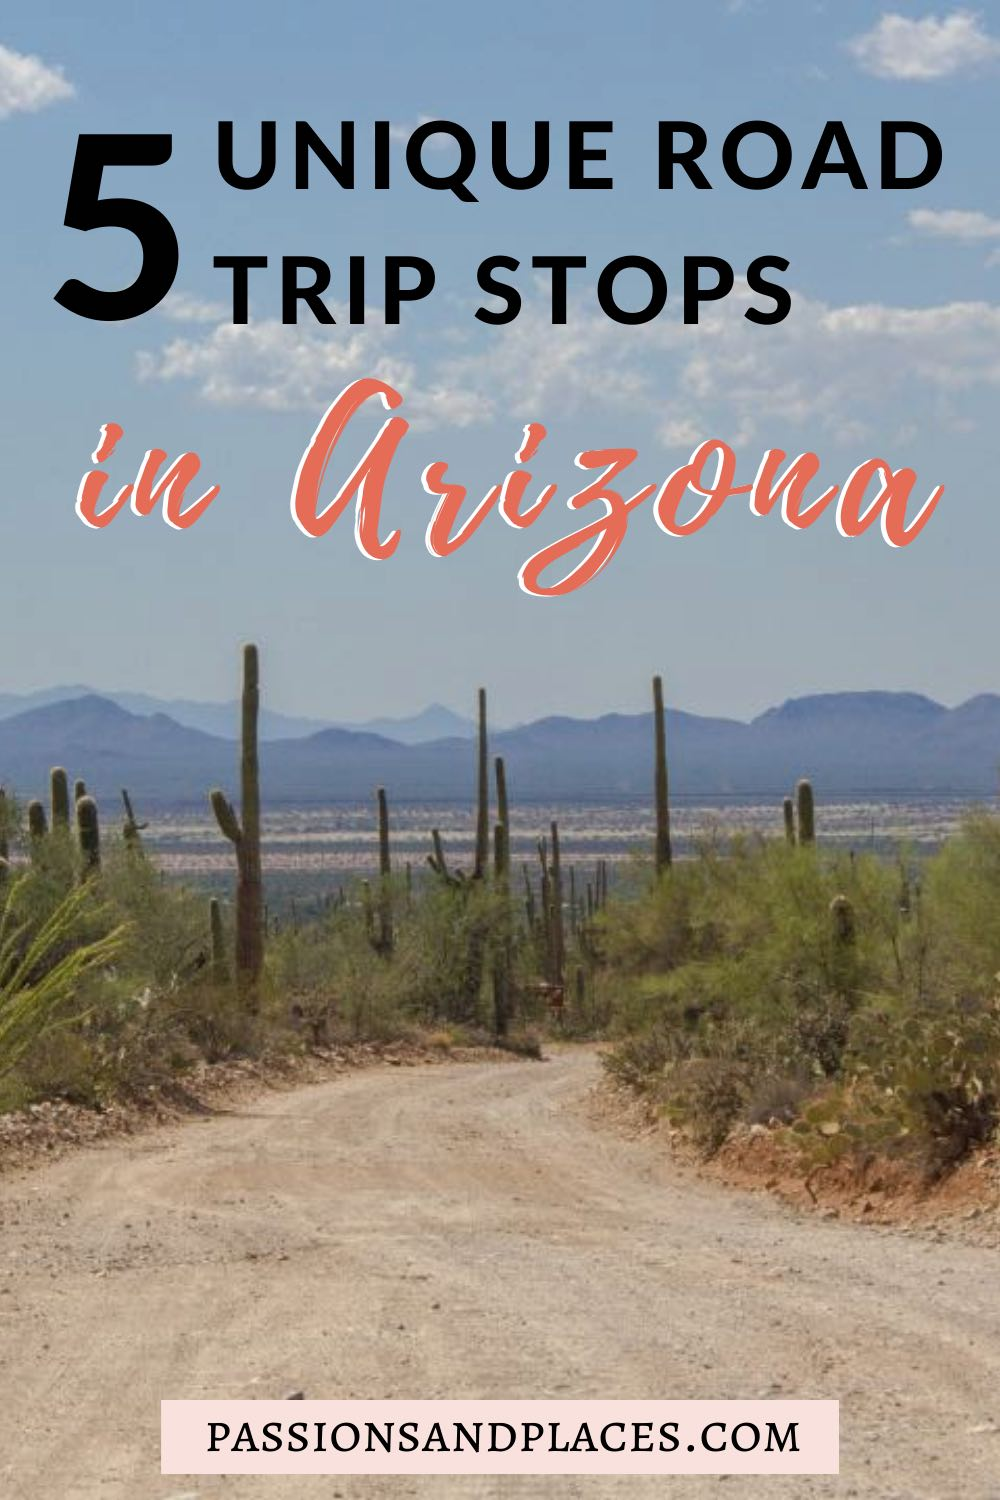 Are you planning a road trip through Arizona? From lesser-known parks to small rural towns, there's so much more to this state than the Grand Canyon and Sedona. Check out this list of unique places to visit in Arizona, including Bisbee, Saguaro National Park, and more! #arizona #southwest #roadtrip